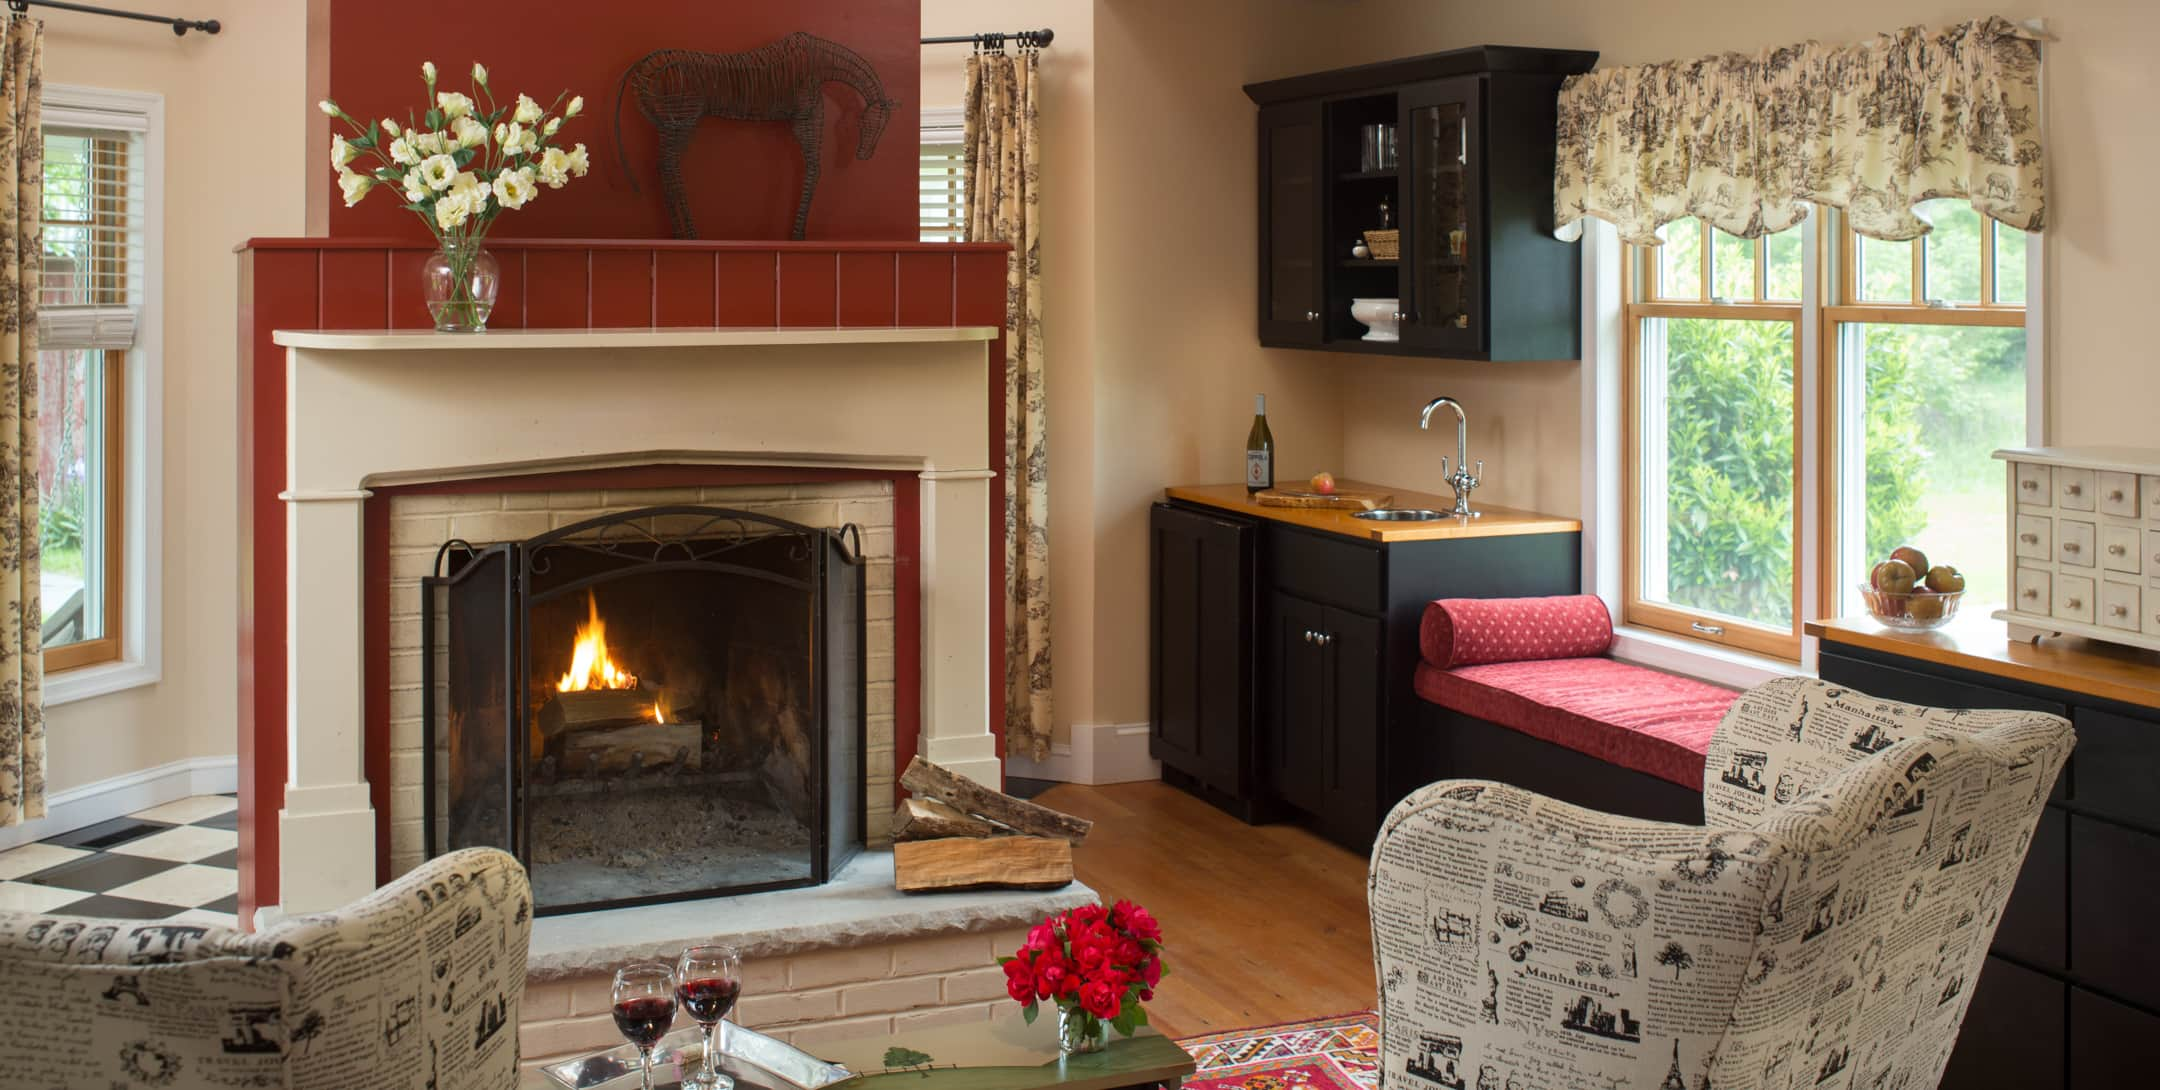 Marley's Cottage fireplace and seating area